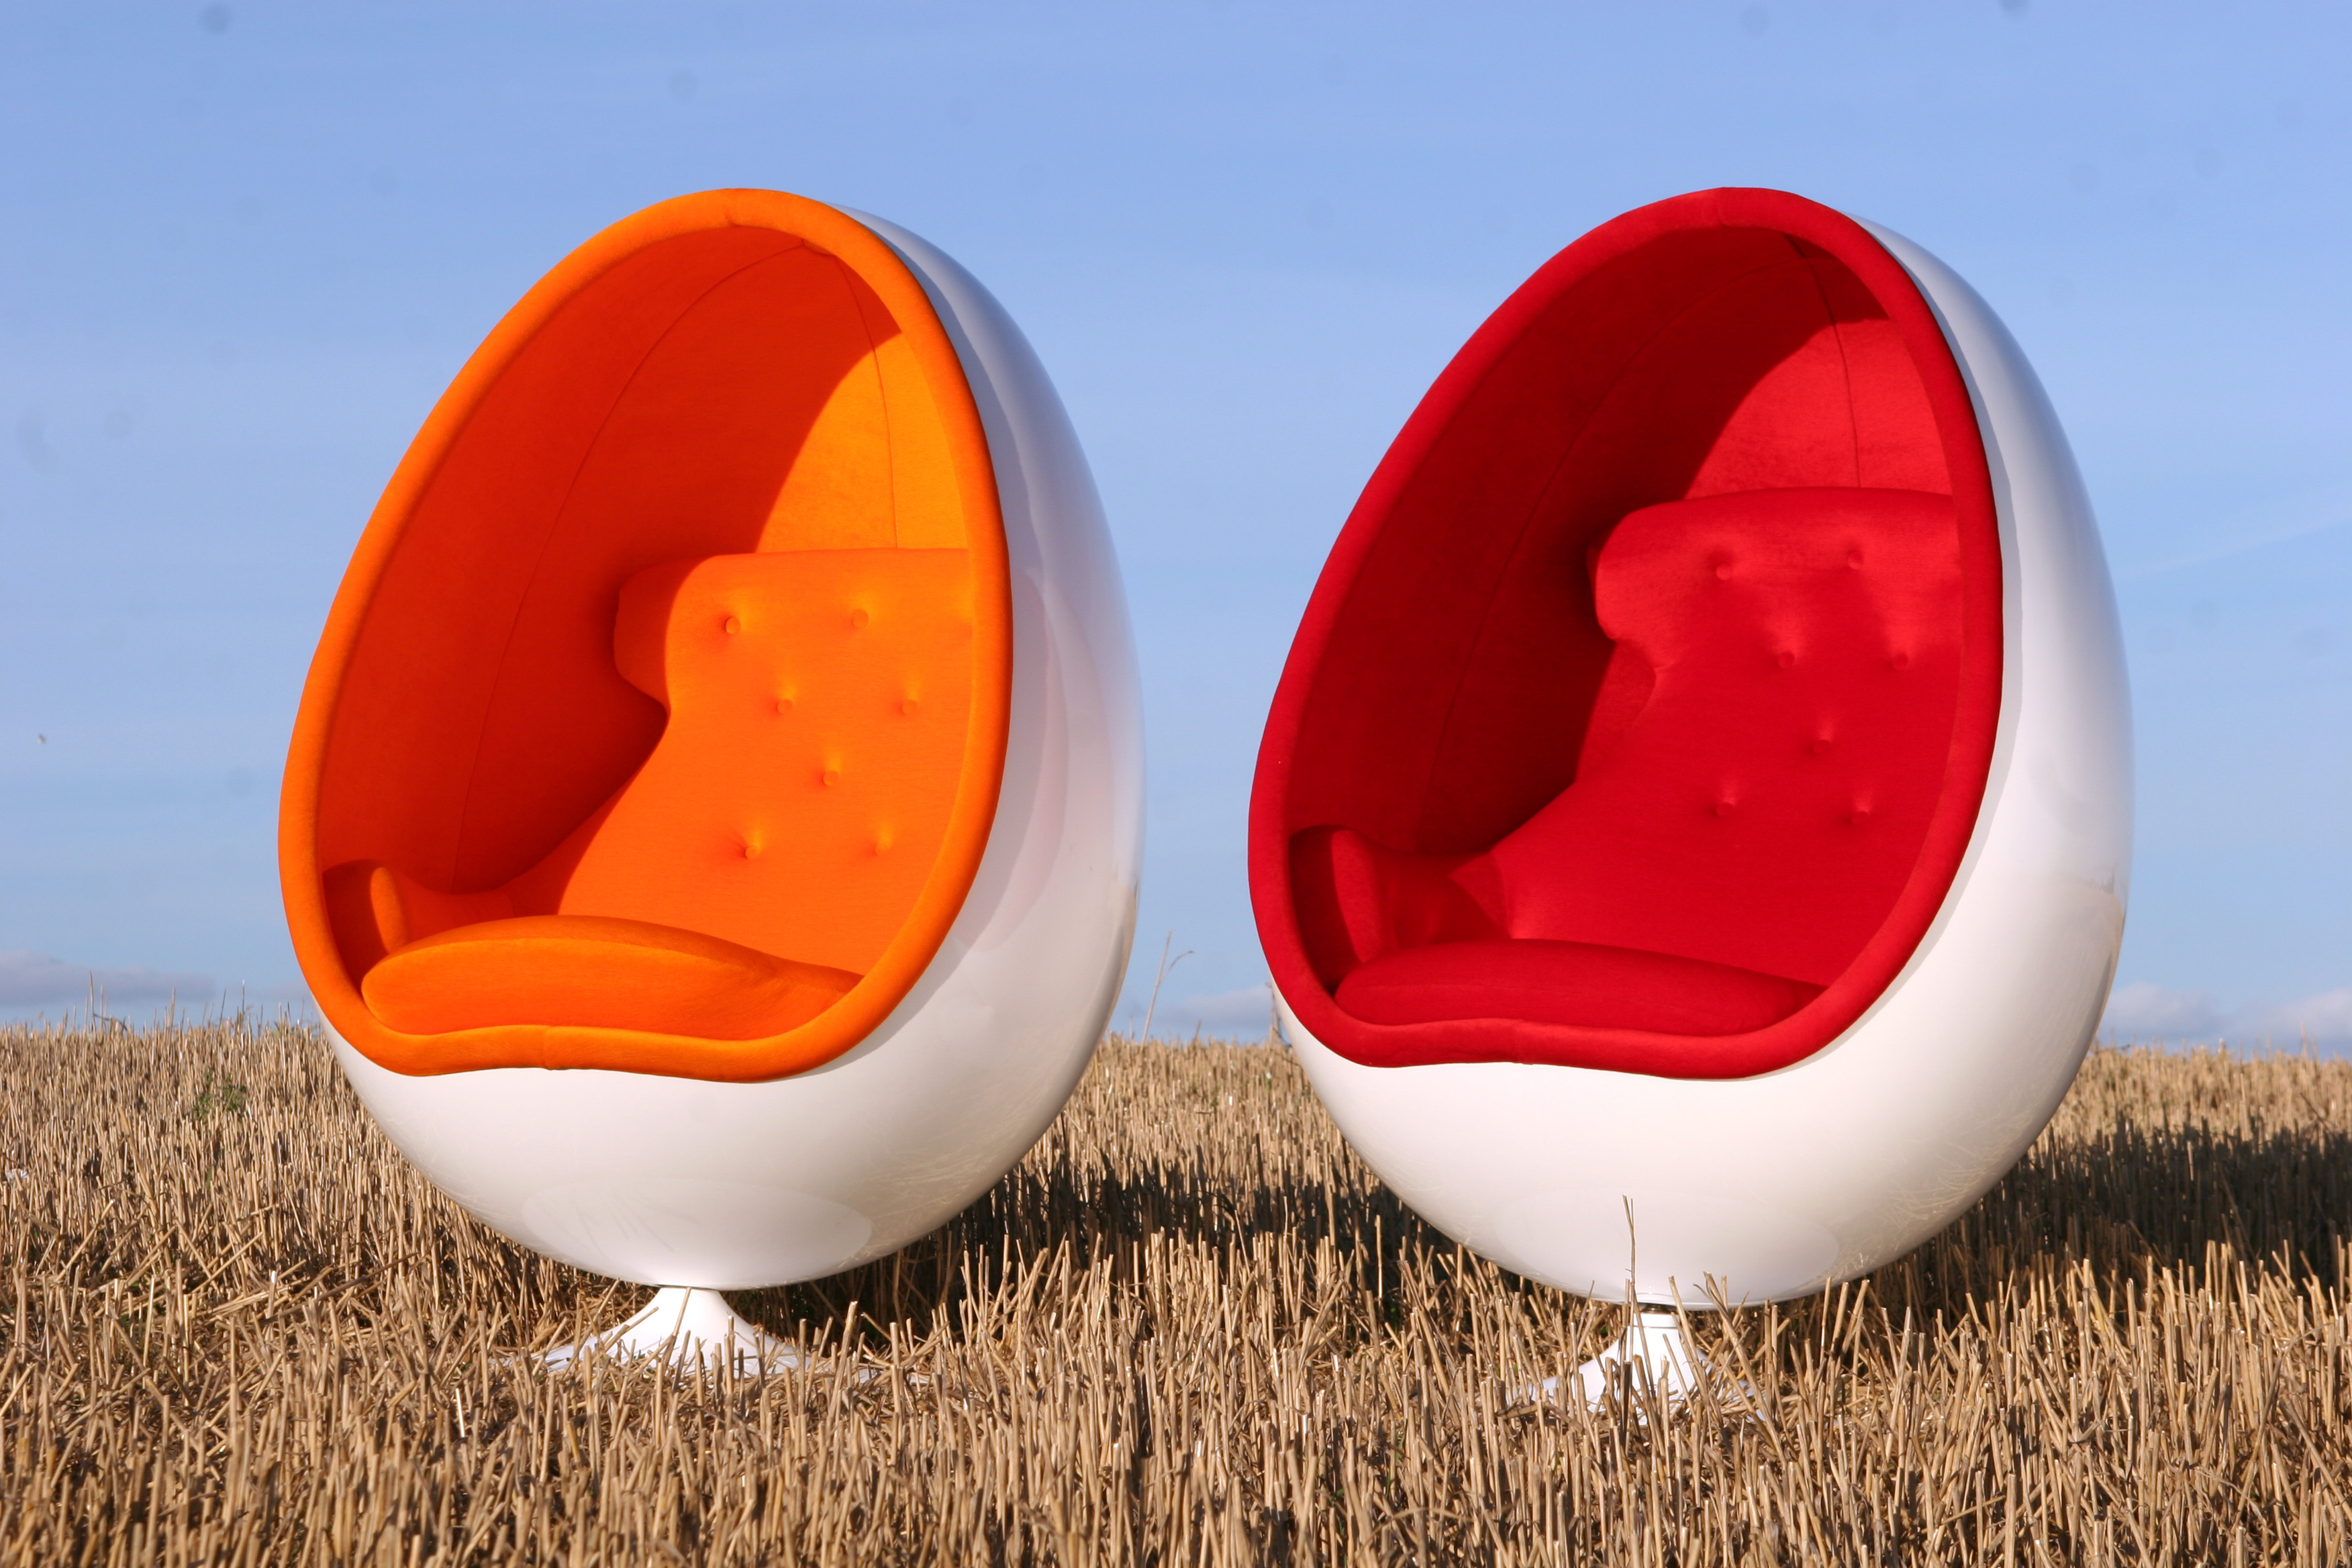 Hatching cats i have cat Egg pod ball chair